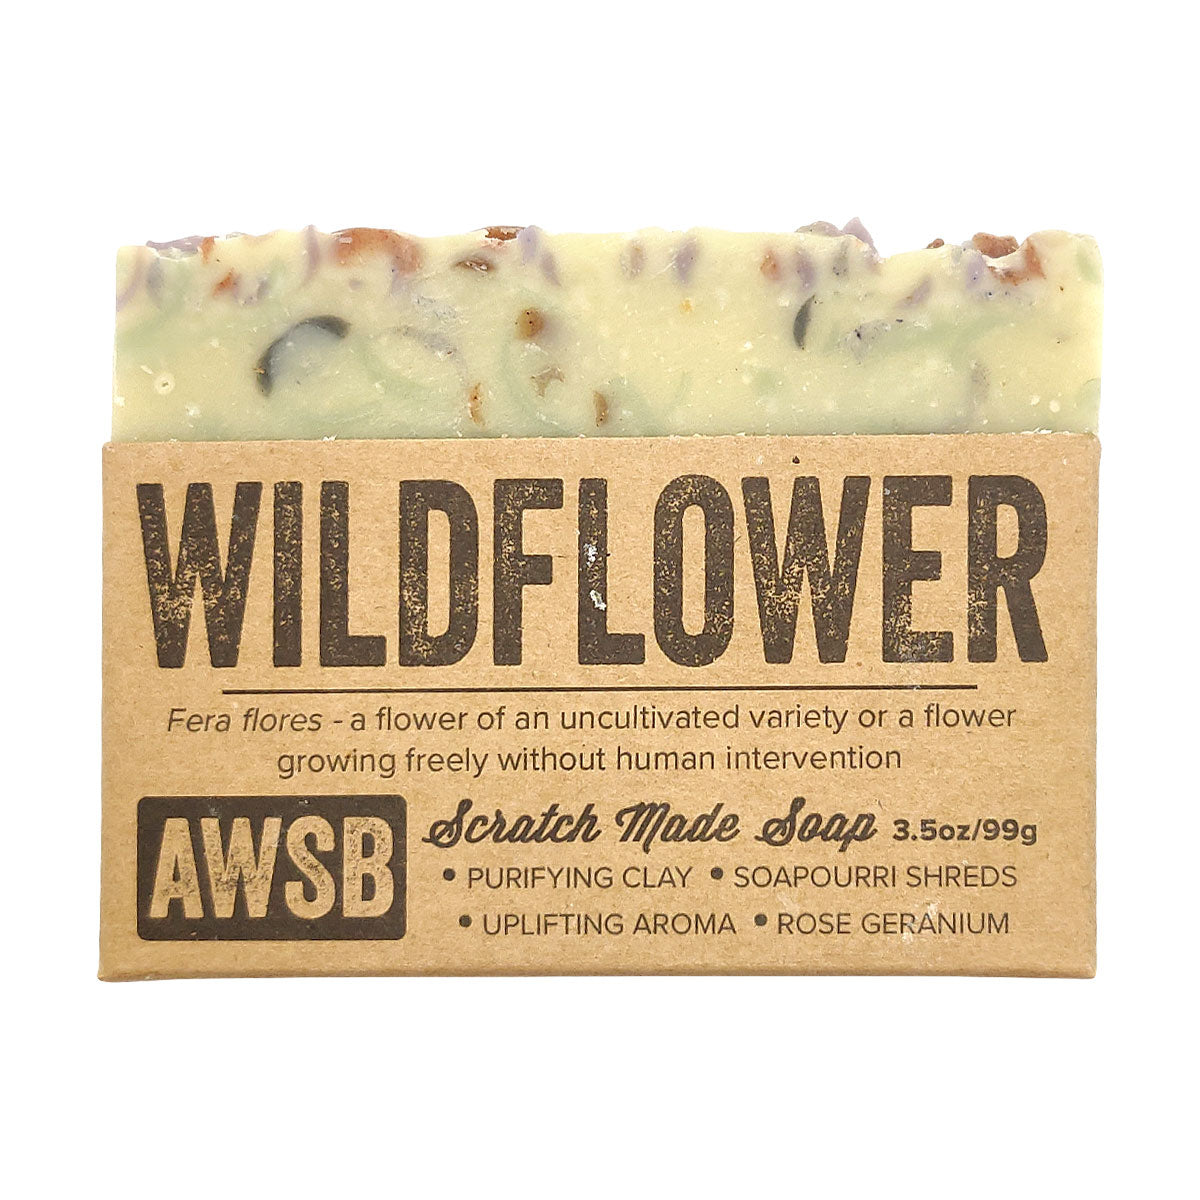 Organic WildFlower Soap for sale, Bridal Shower Favor, Sustainable Skincare, Natural Gift, Vegan Cruelty Free, Face And Body, Bath Beauty, Essential Oil Soap, Botanical Soap